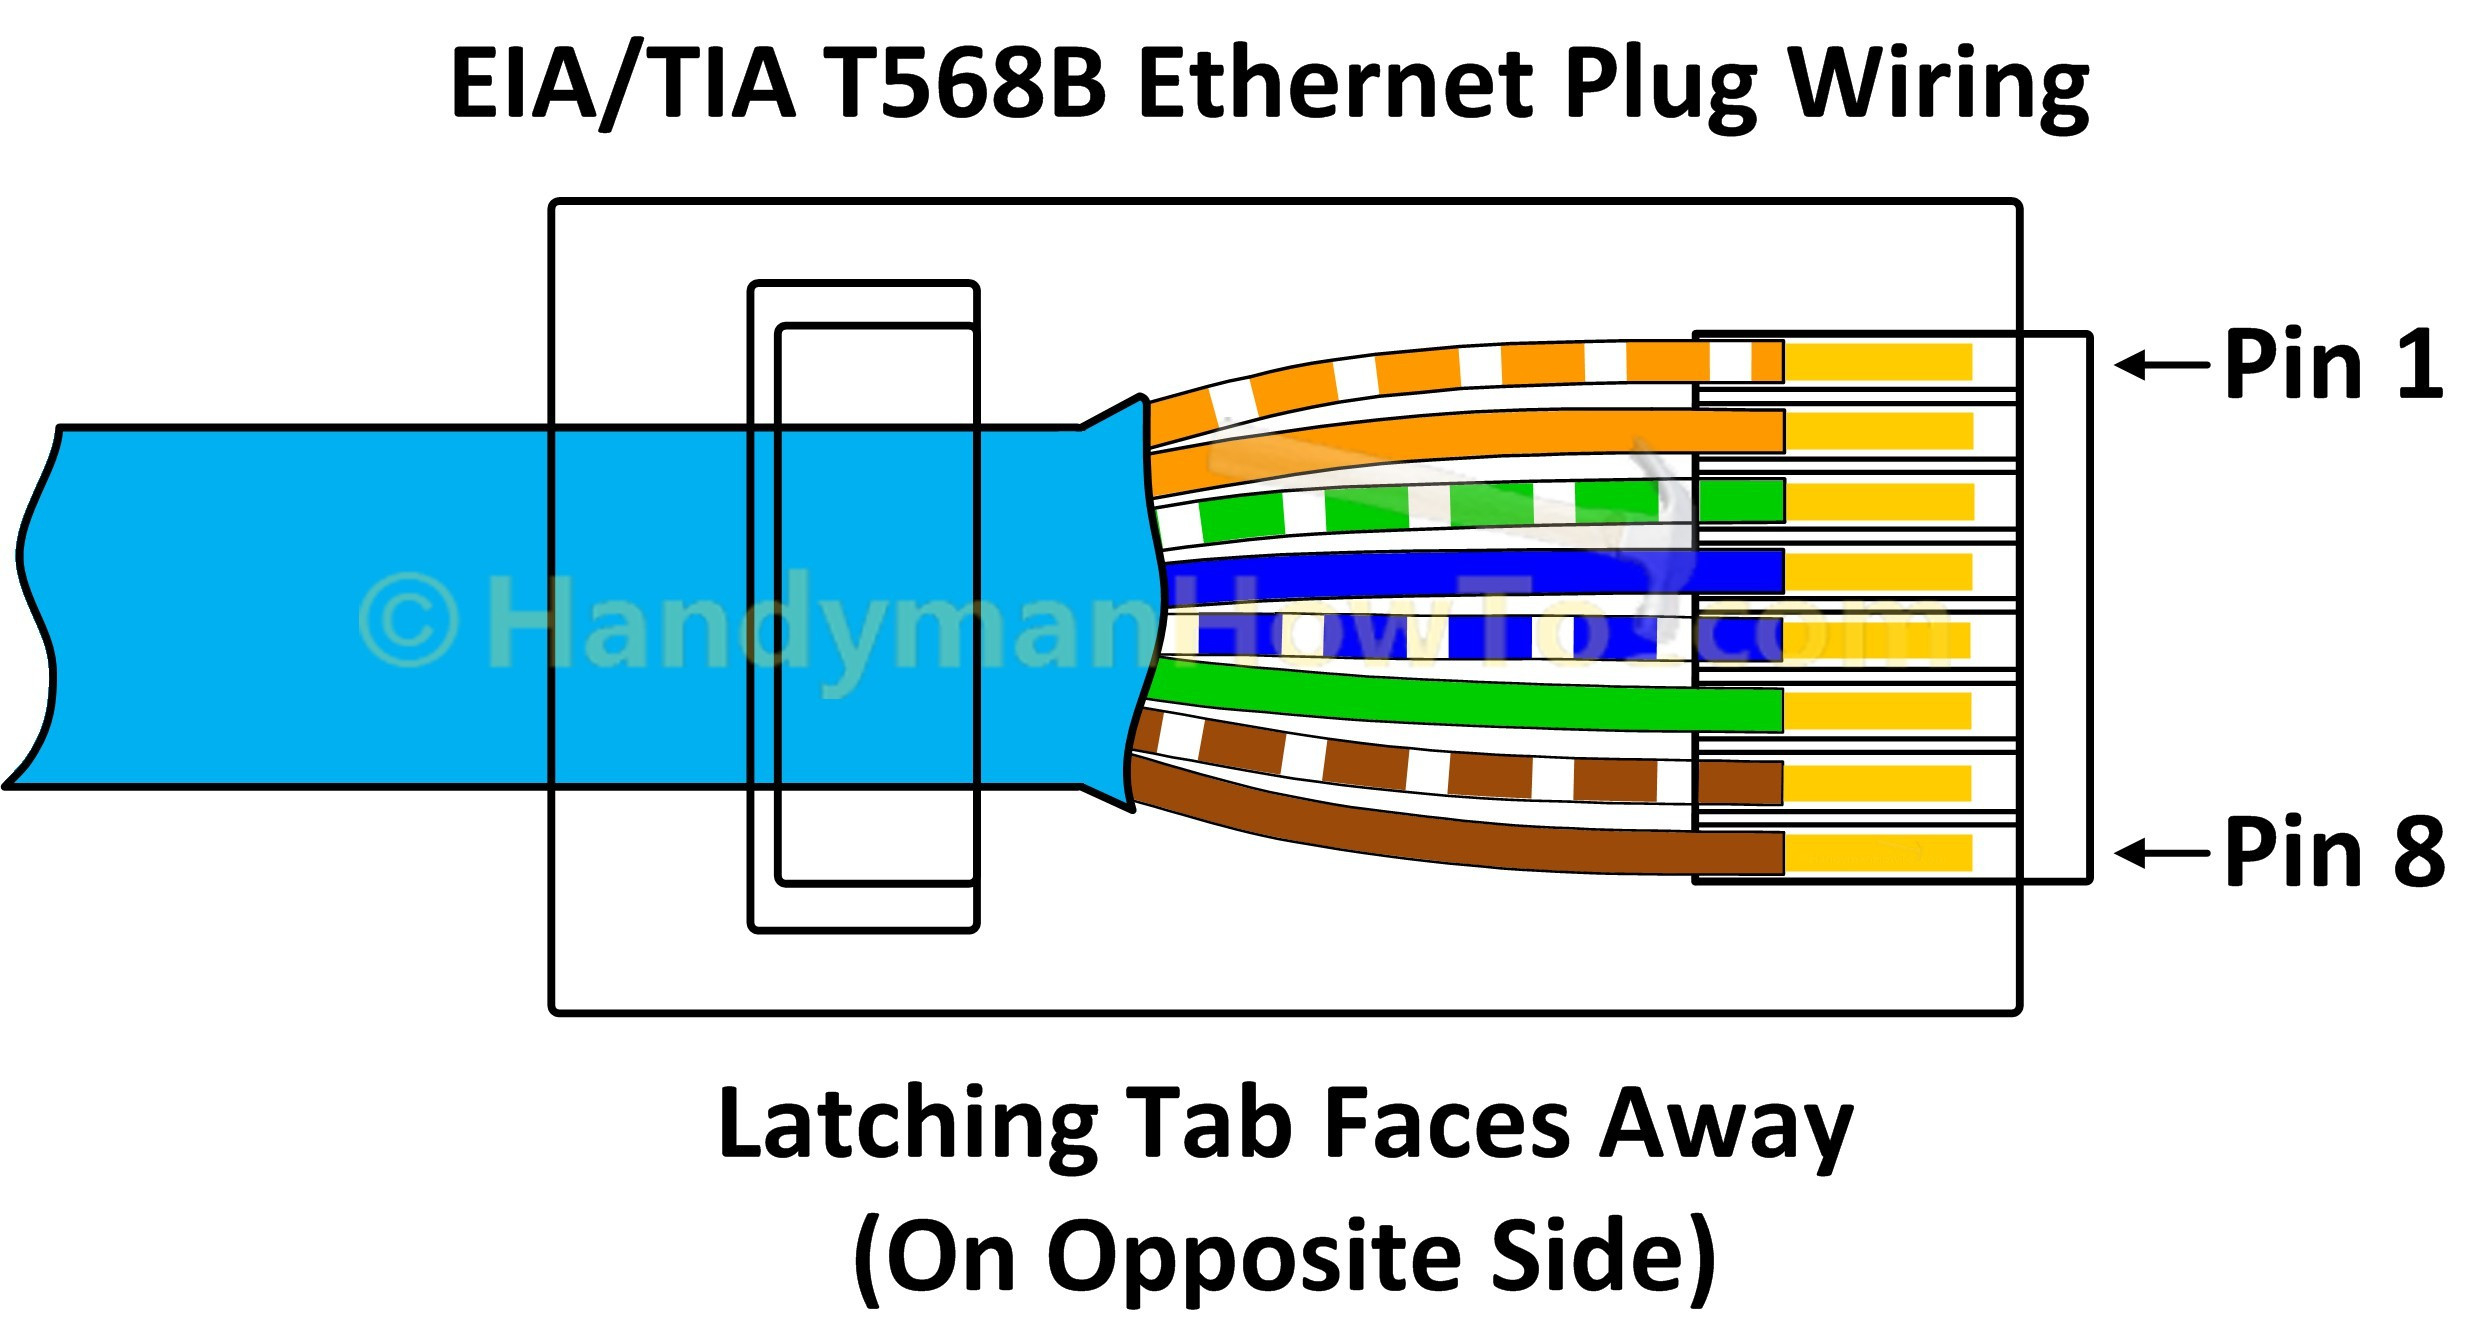 1gb Cat6 Cable Wiring Plug - Switch Diagram •